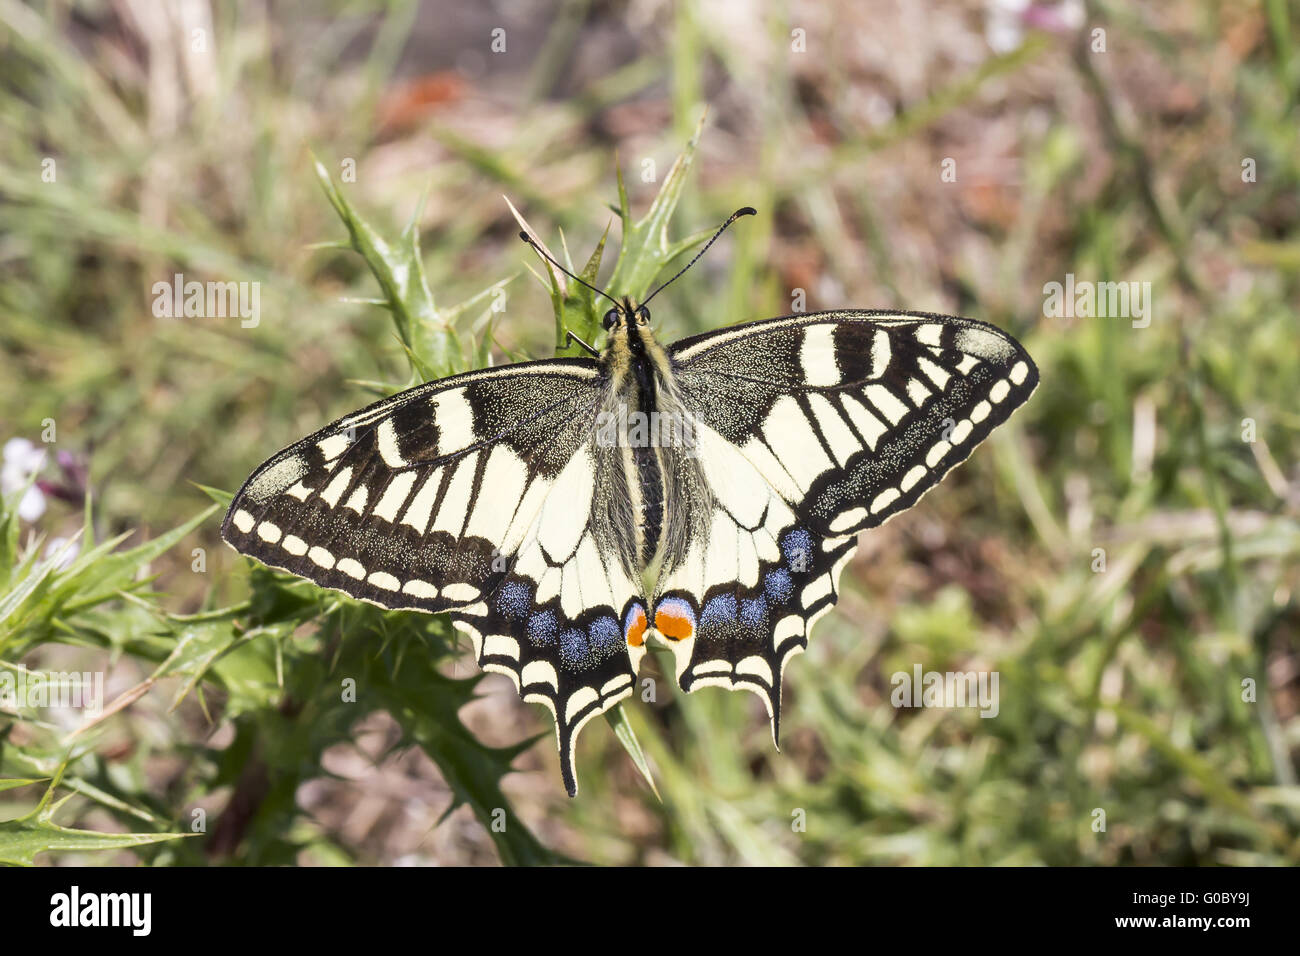 Papilio Machaon Swallowtail Butterfly From Europe Stock